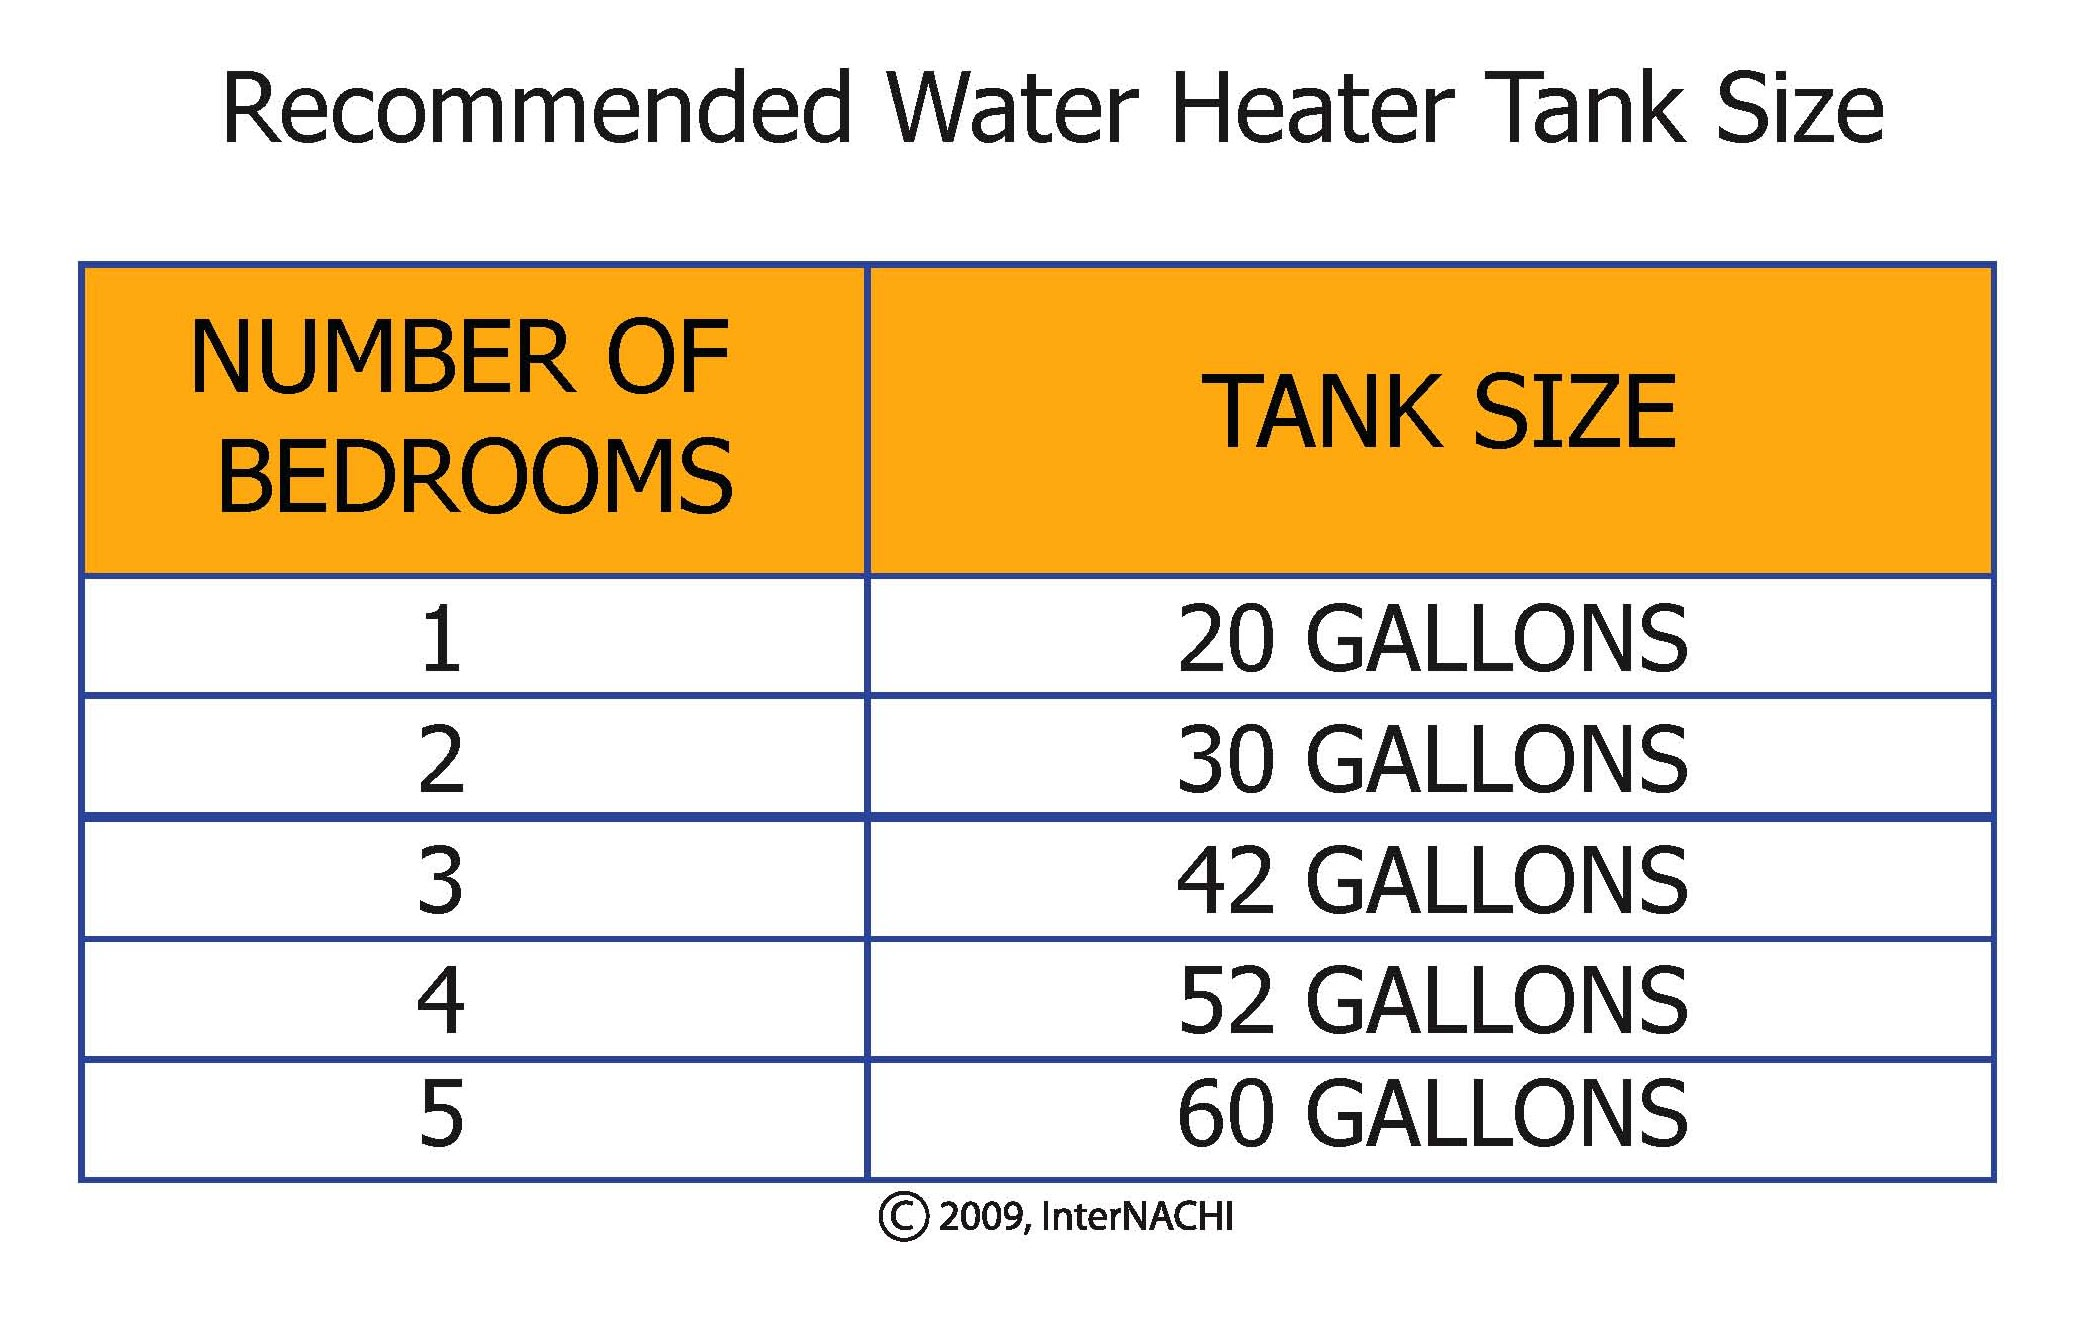 Water heater tank size.